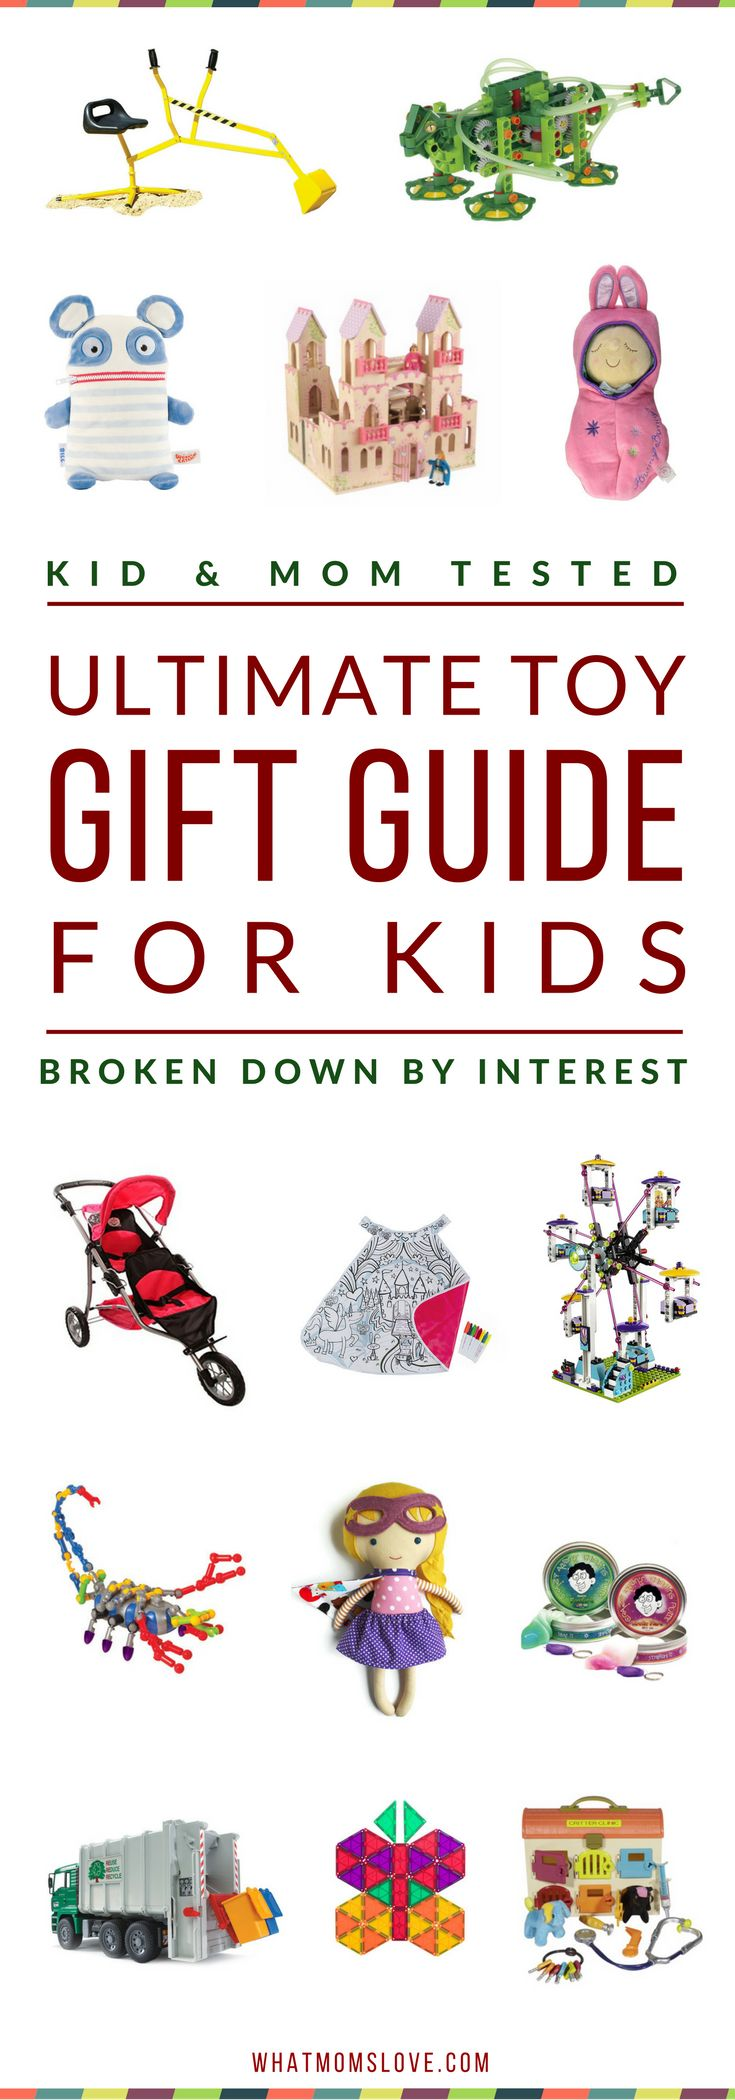 Best Toys For Kids   Gift Ideas For Girls and Boys   Hottest Toys for the Holidays   Best Birthday Gifts For Kids   Gift Ideas For Toddlers and Tweens   Click to access top picks based on your child's interests or Pin for later   from What Moms Love